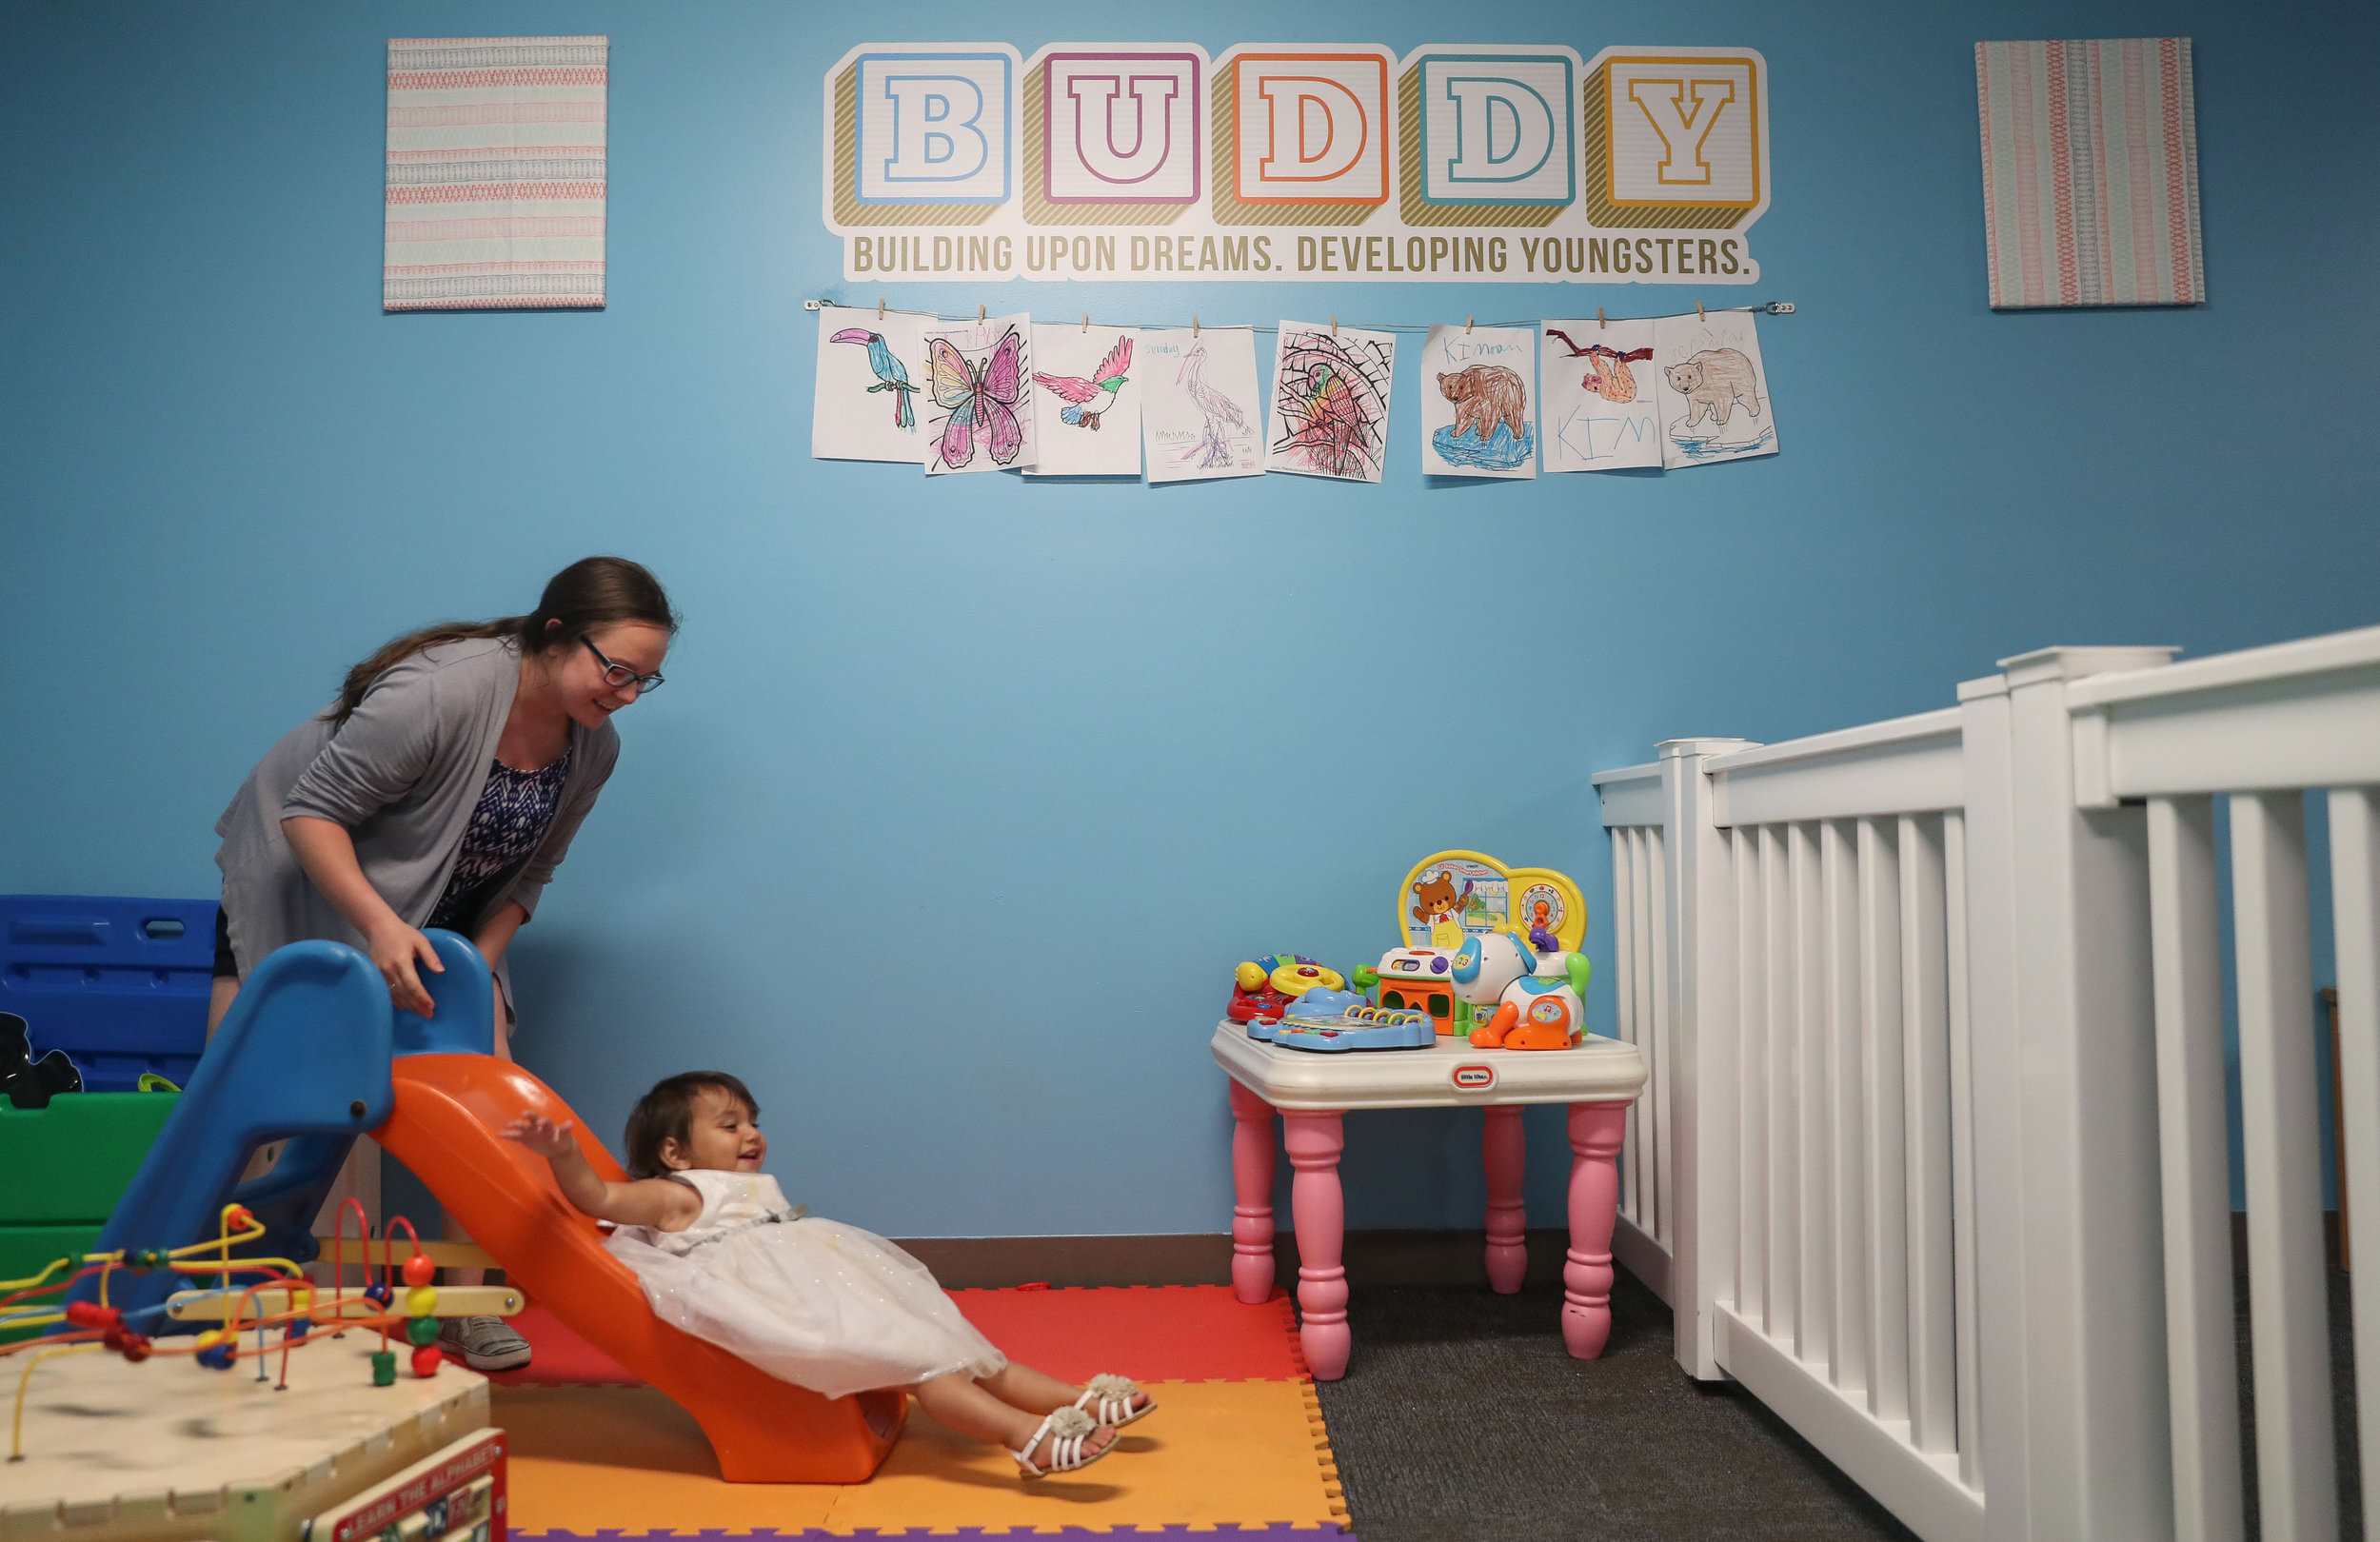 The BUDDY Program provides spaces for children ages one to seven. BUDDY Serenity plays with a one-year old in the designated toddler space. Local businesses and individuals generously donated the equipment needed to make the toddler area a safe and fun space for our children.